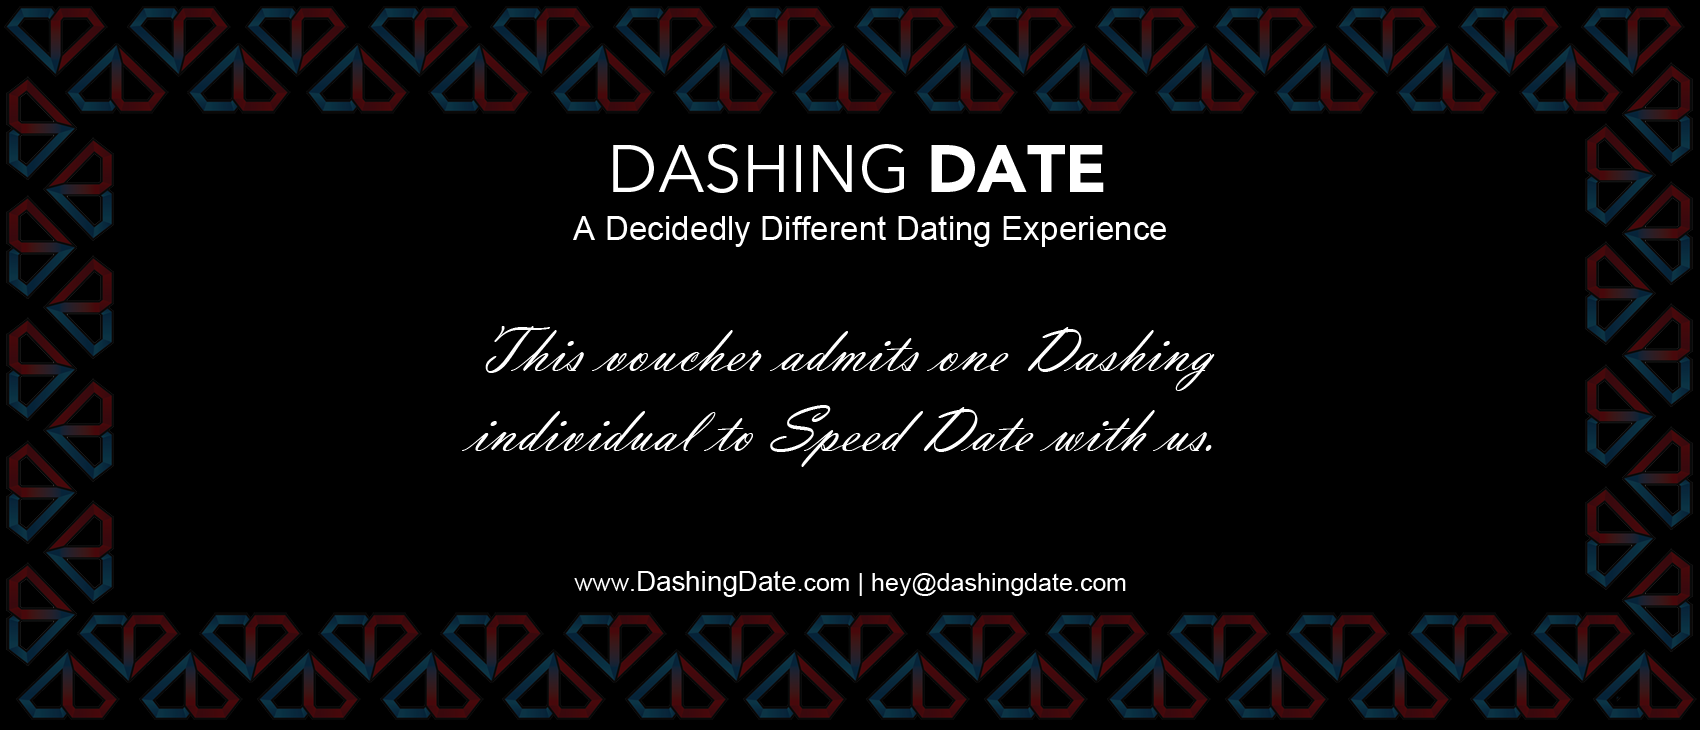 Speed dating vouchers